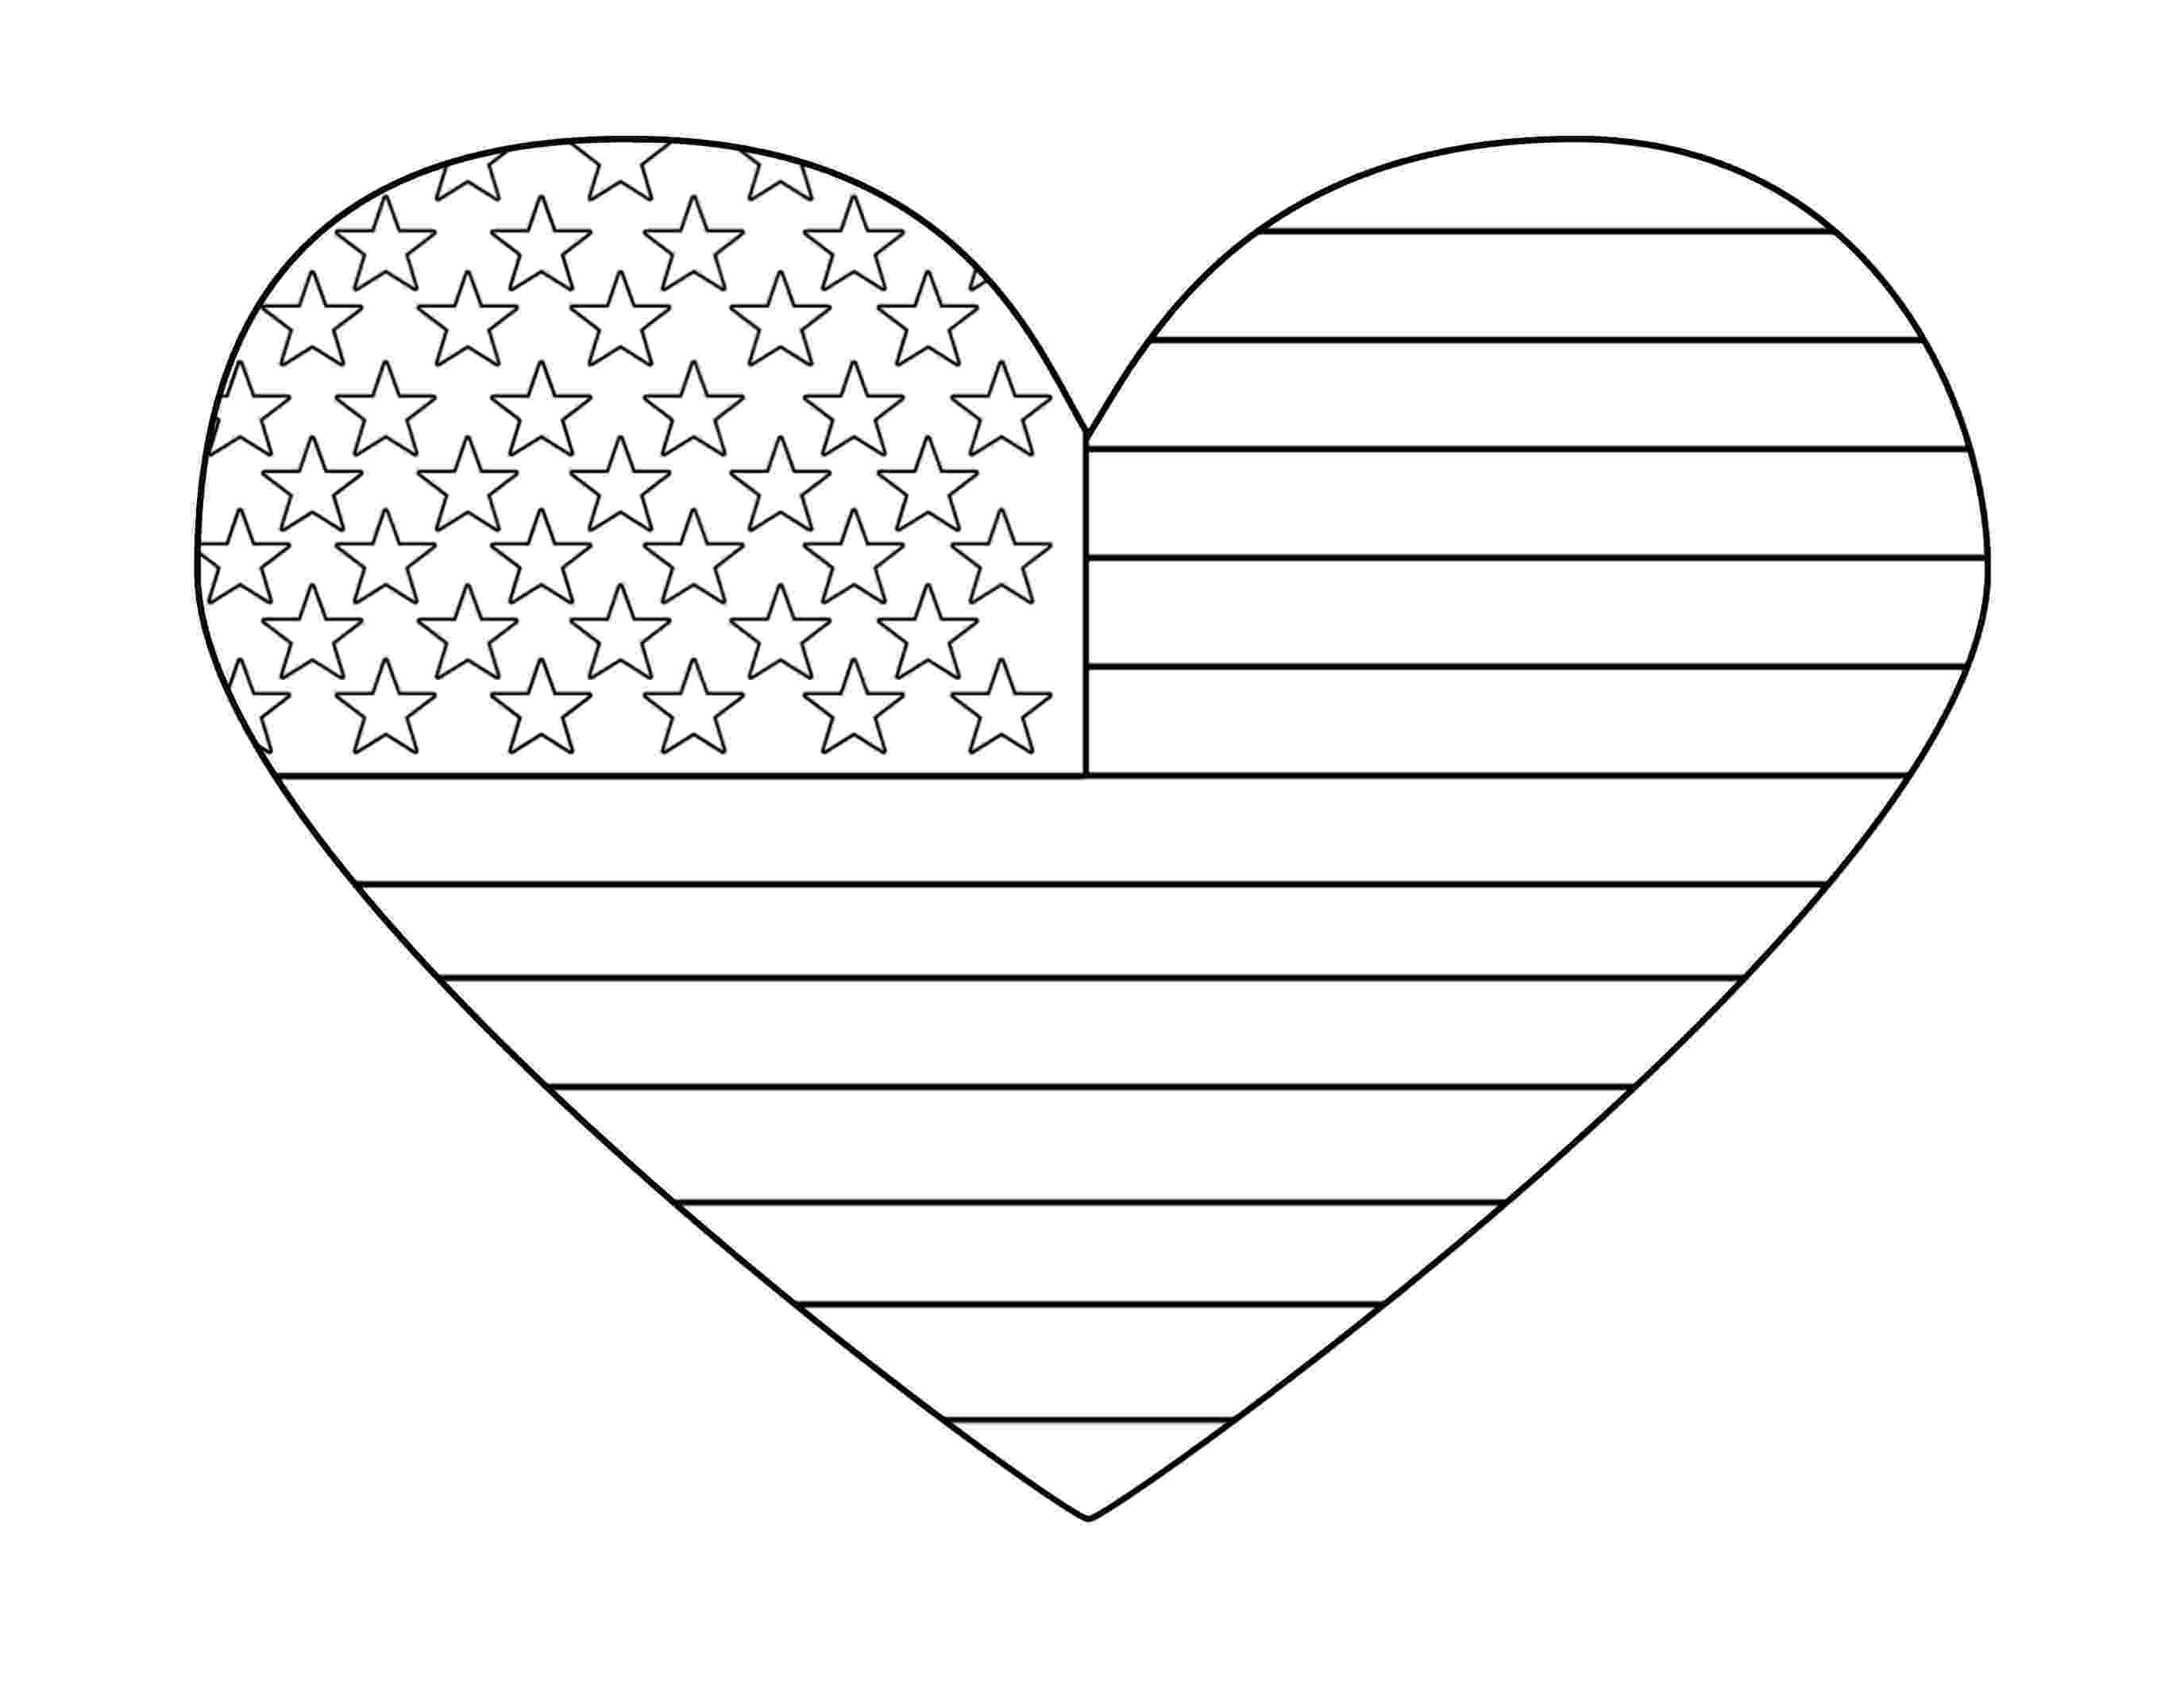 printable heart coloring pages free printable heart coloring pages for kids cool2bkids printable pages coloring heart